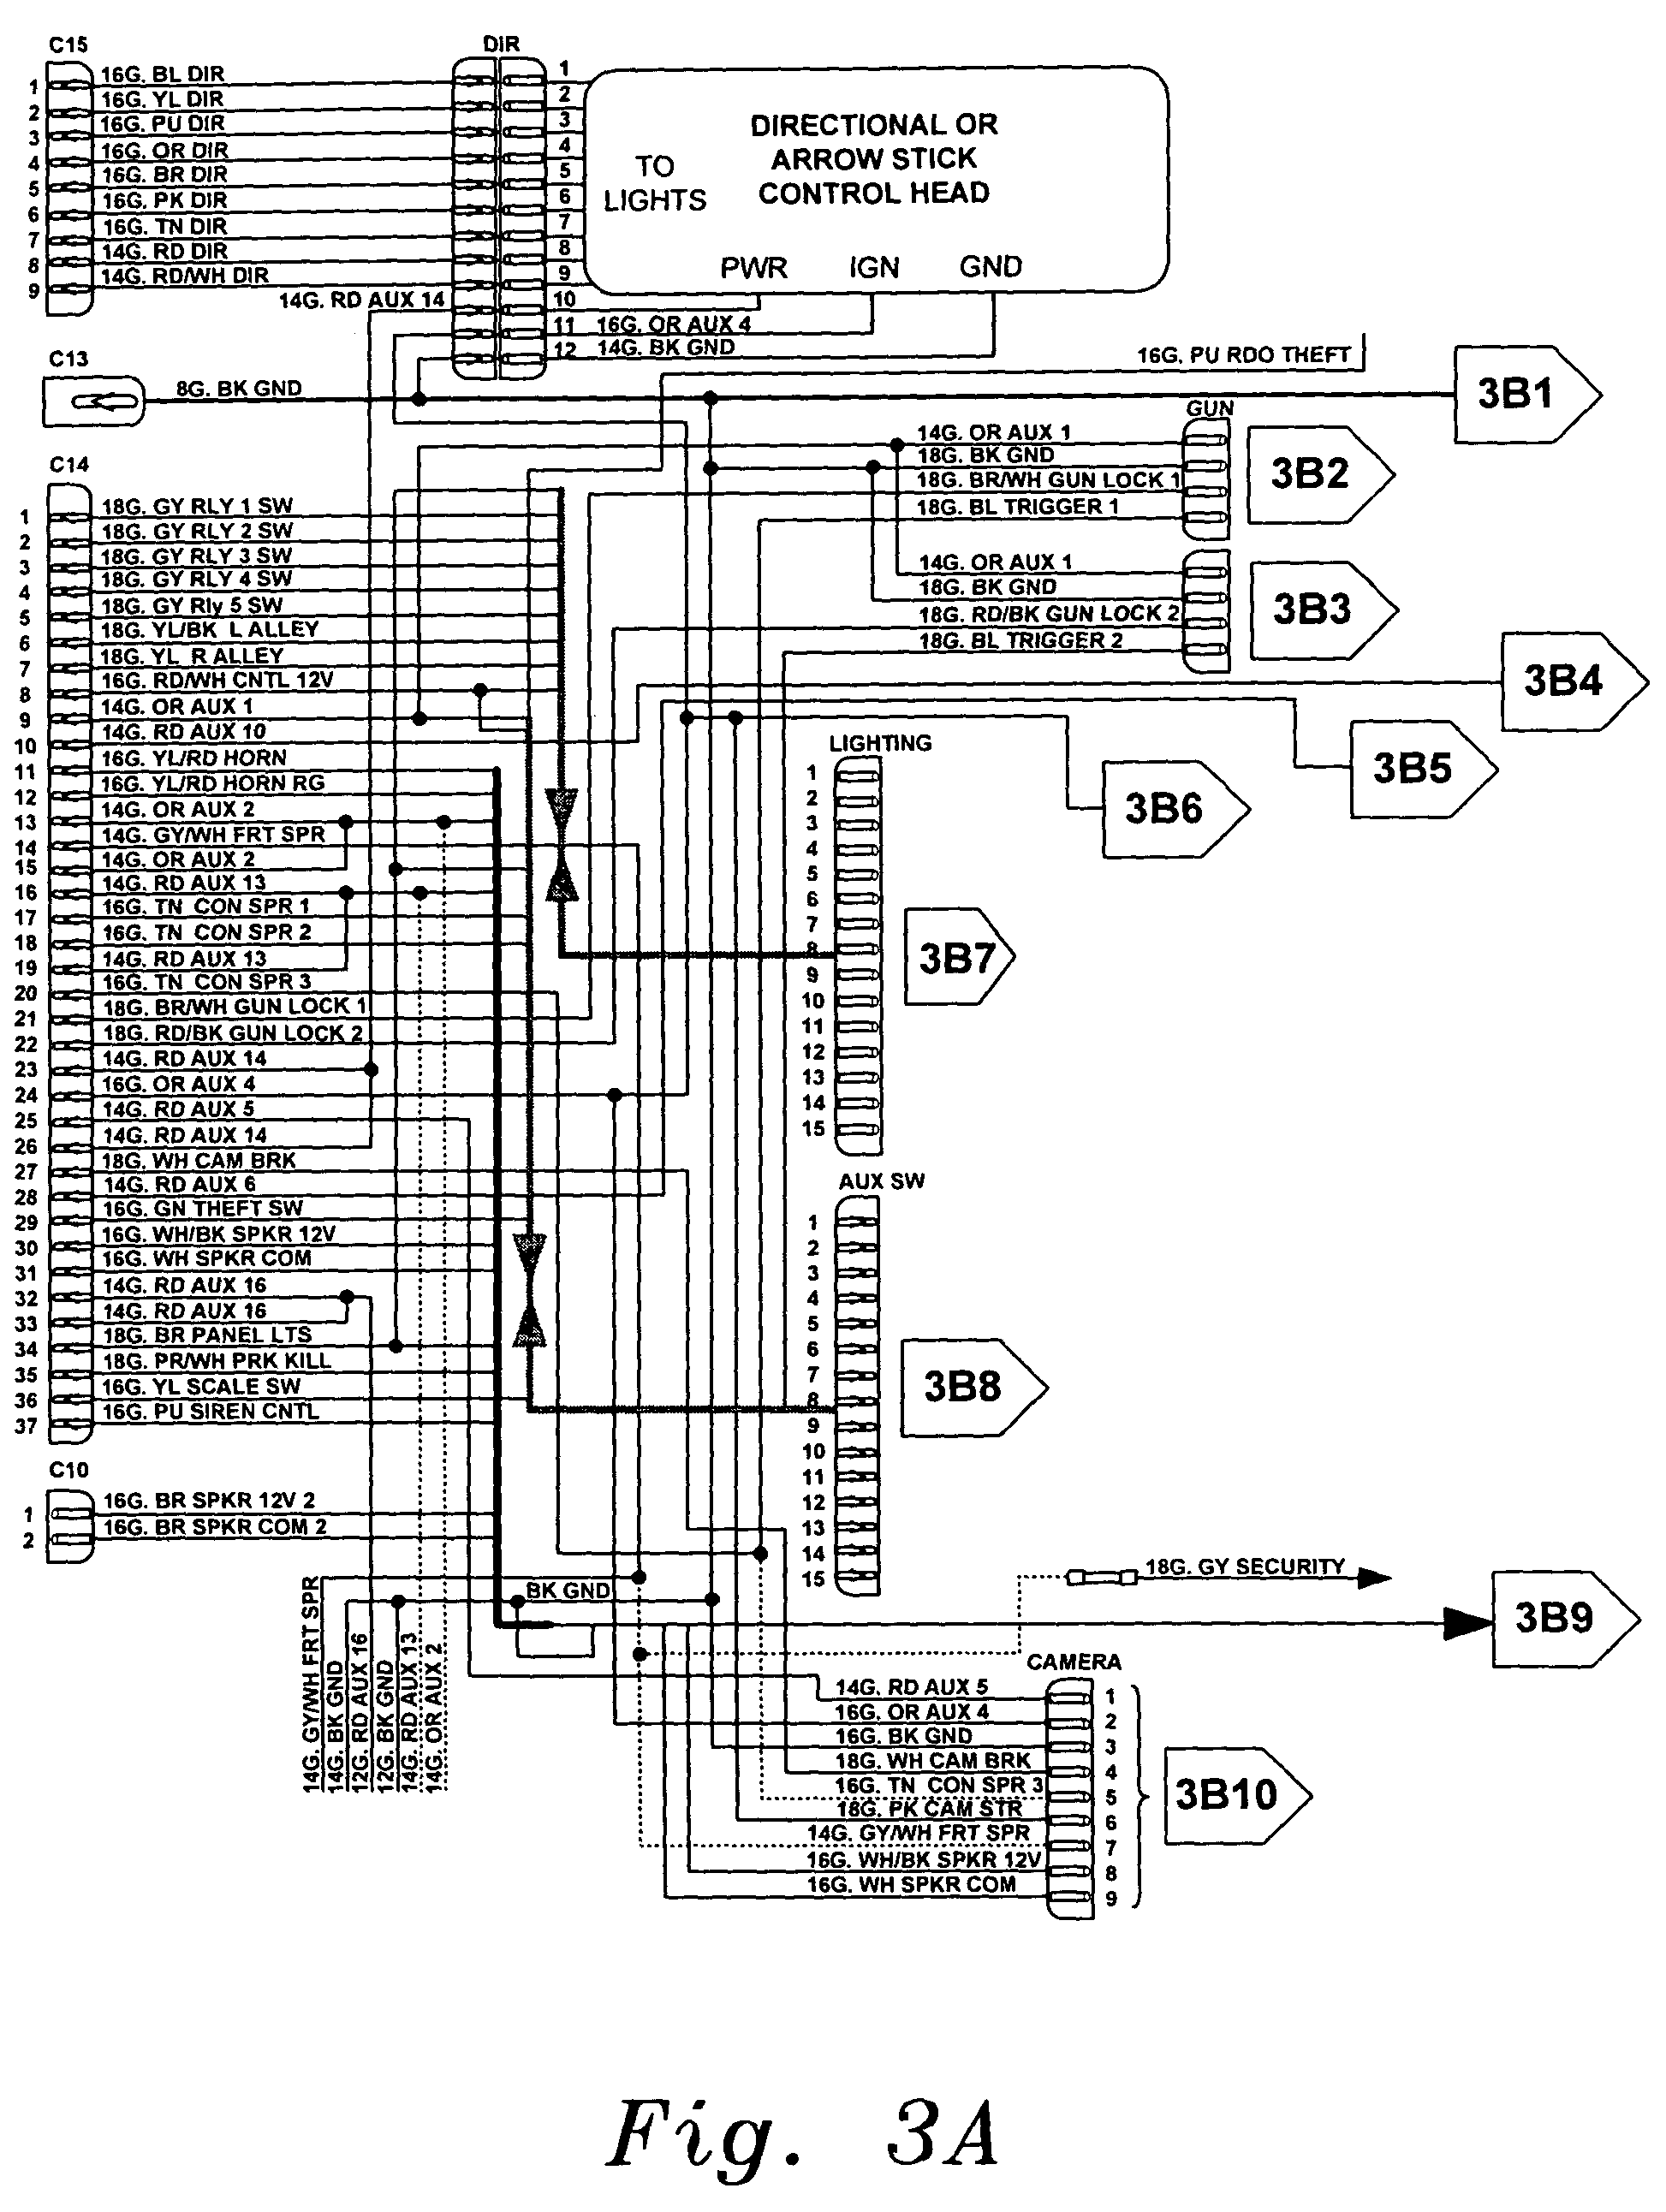 US07342325 20080311 D00004 patent us7342325 universal fleet electrical system google patents cat c15 wiring diagram at gsmportal.co